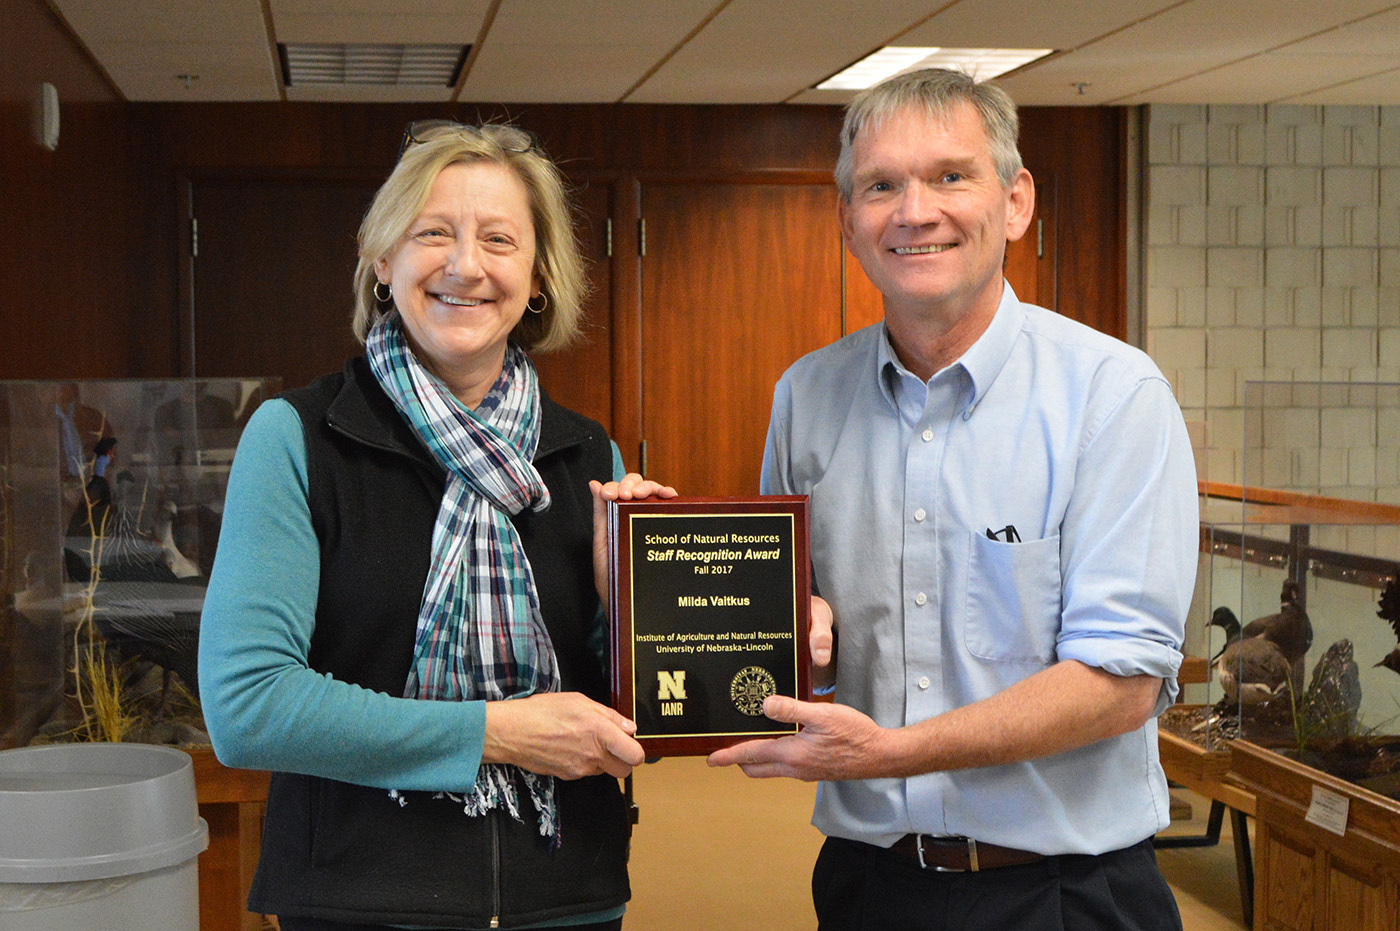 Milda Vaitkus, project manager for the Center for Advanced Land Management Information Technologies at the School of Natural Resources, earned the fall 2017 SNR Staff Recognition Award.